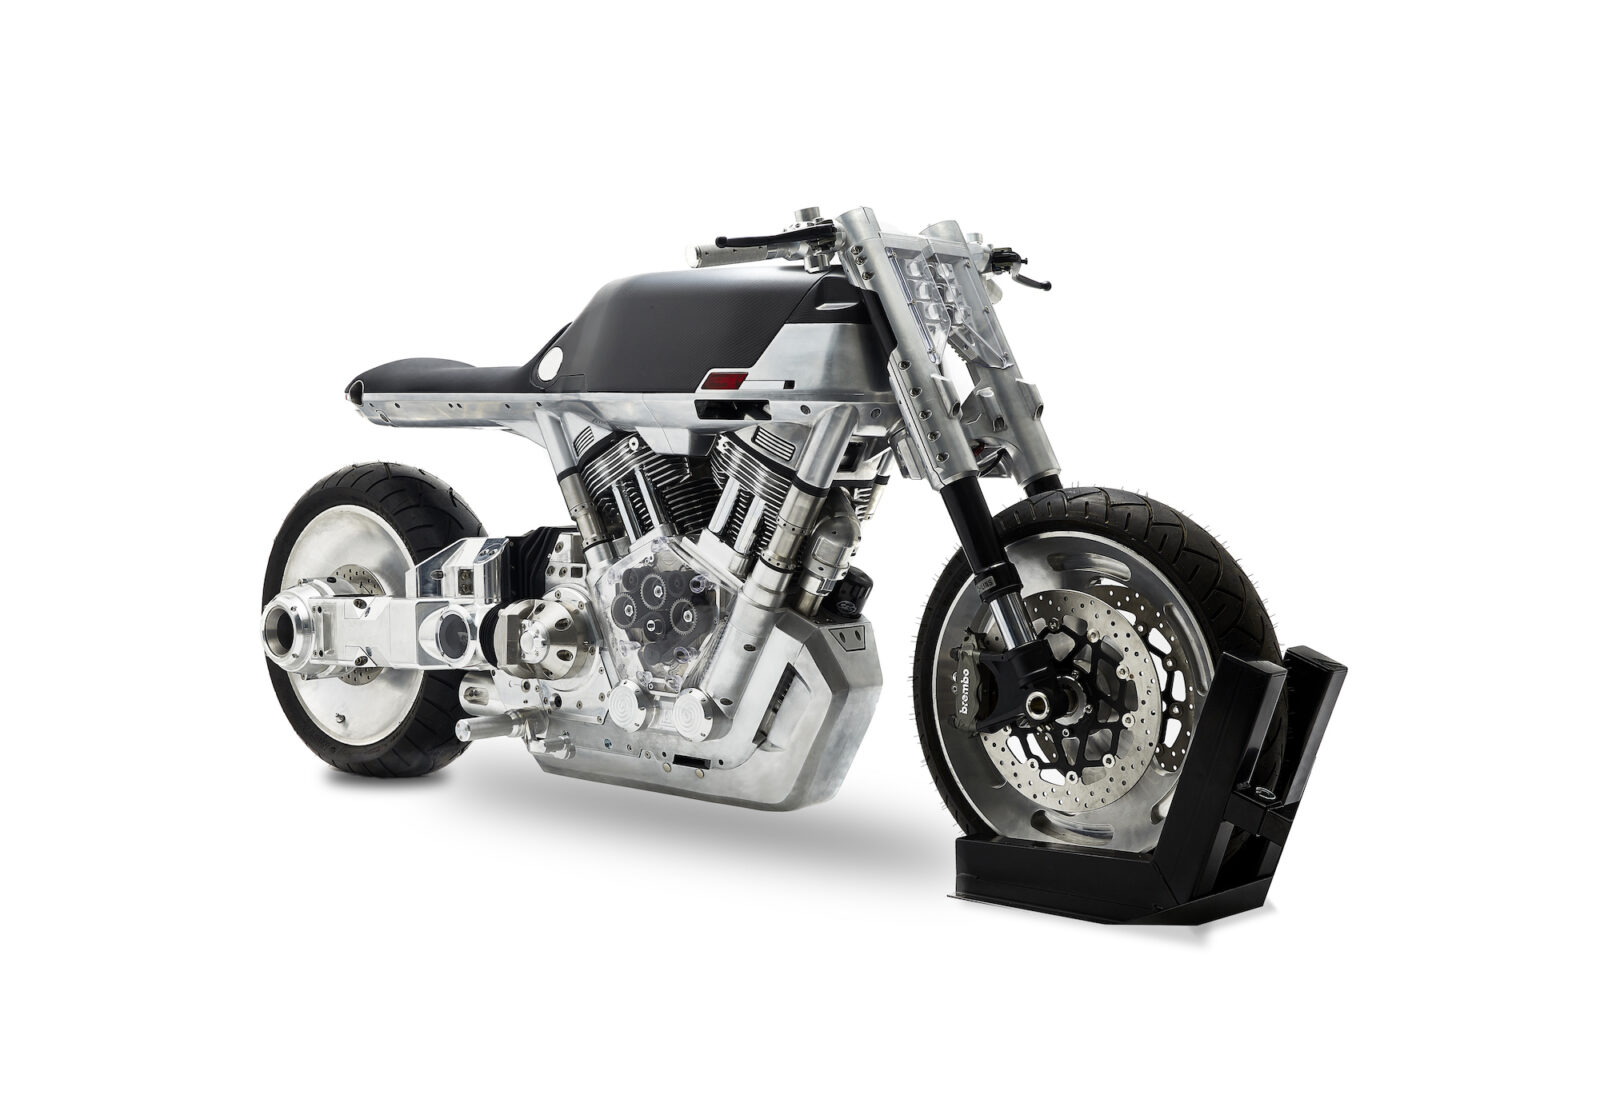 Vanguard Roadster Motorcycle 11 1600x1095 - Vanguard Roadster